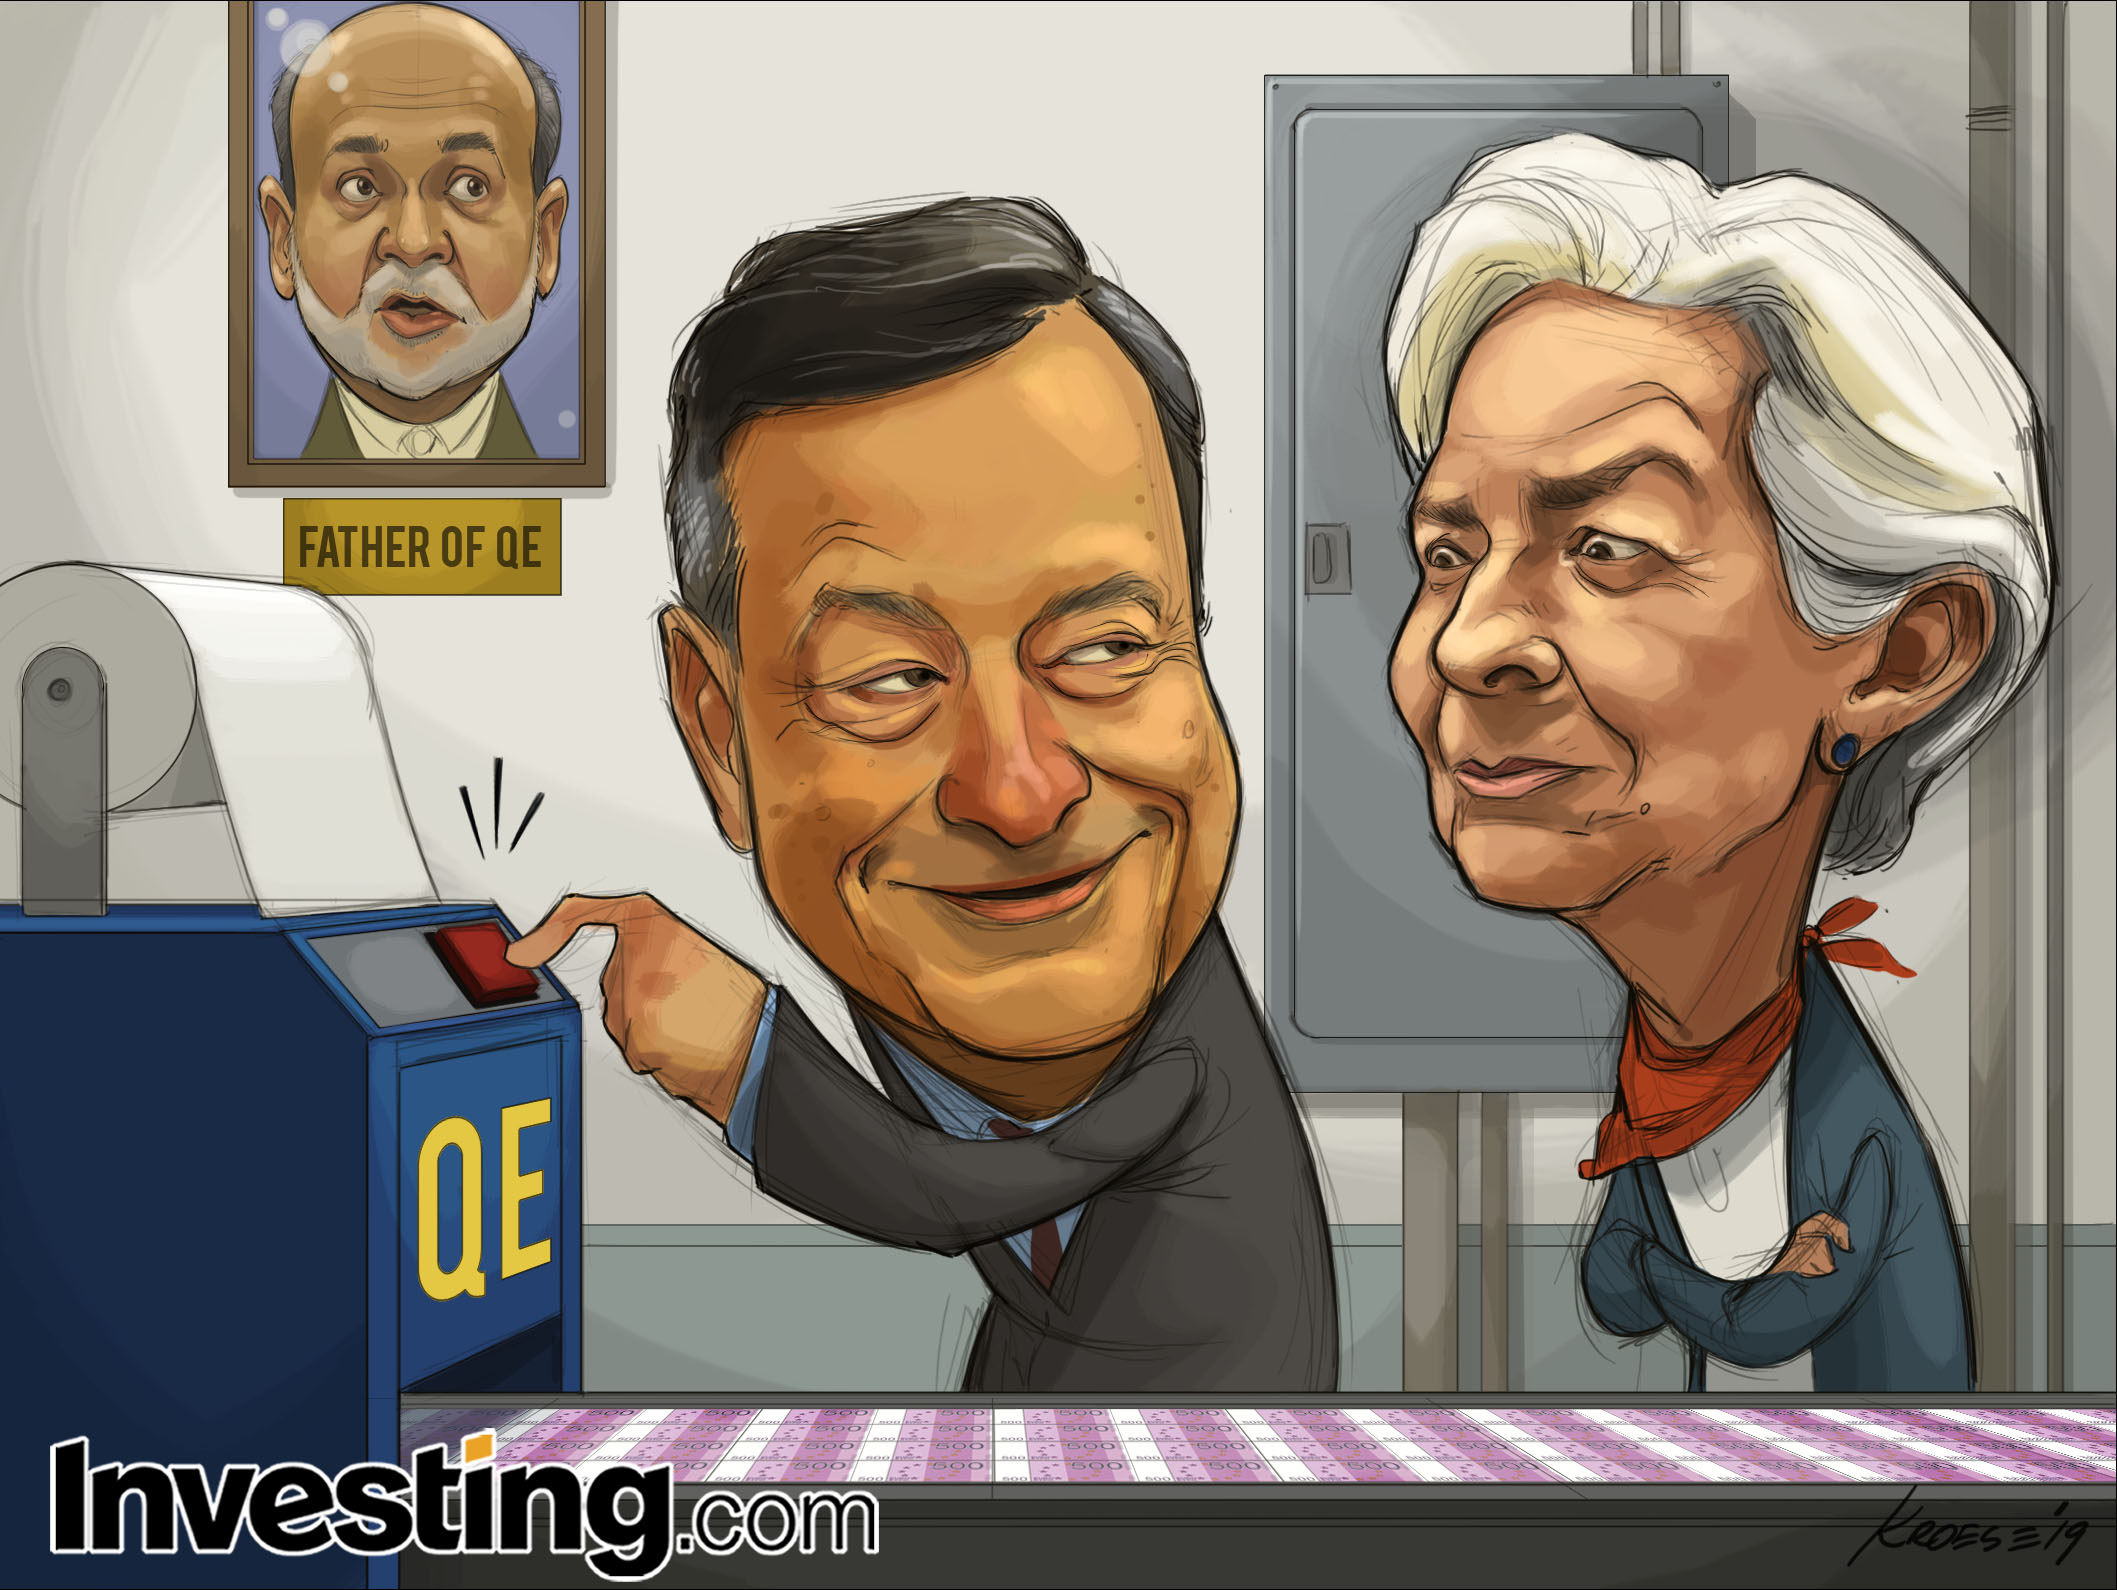 ECB Cuts Rates, Restarts QE As Draghi Era Ends